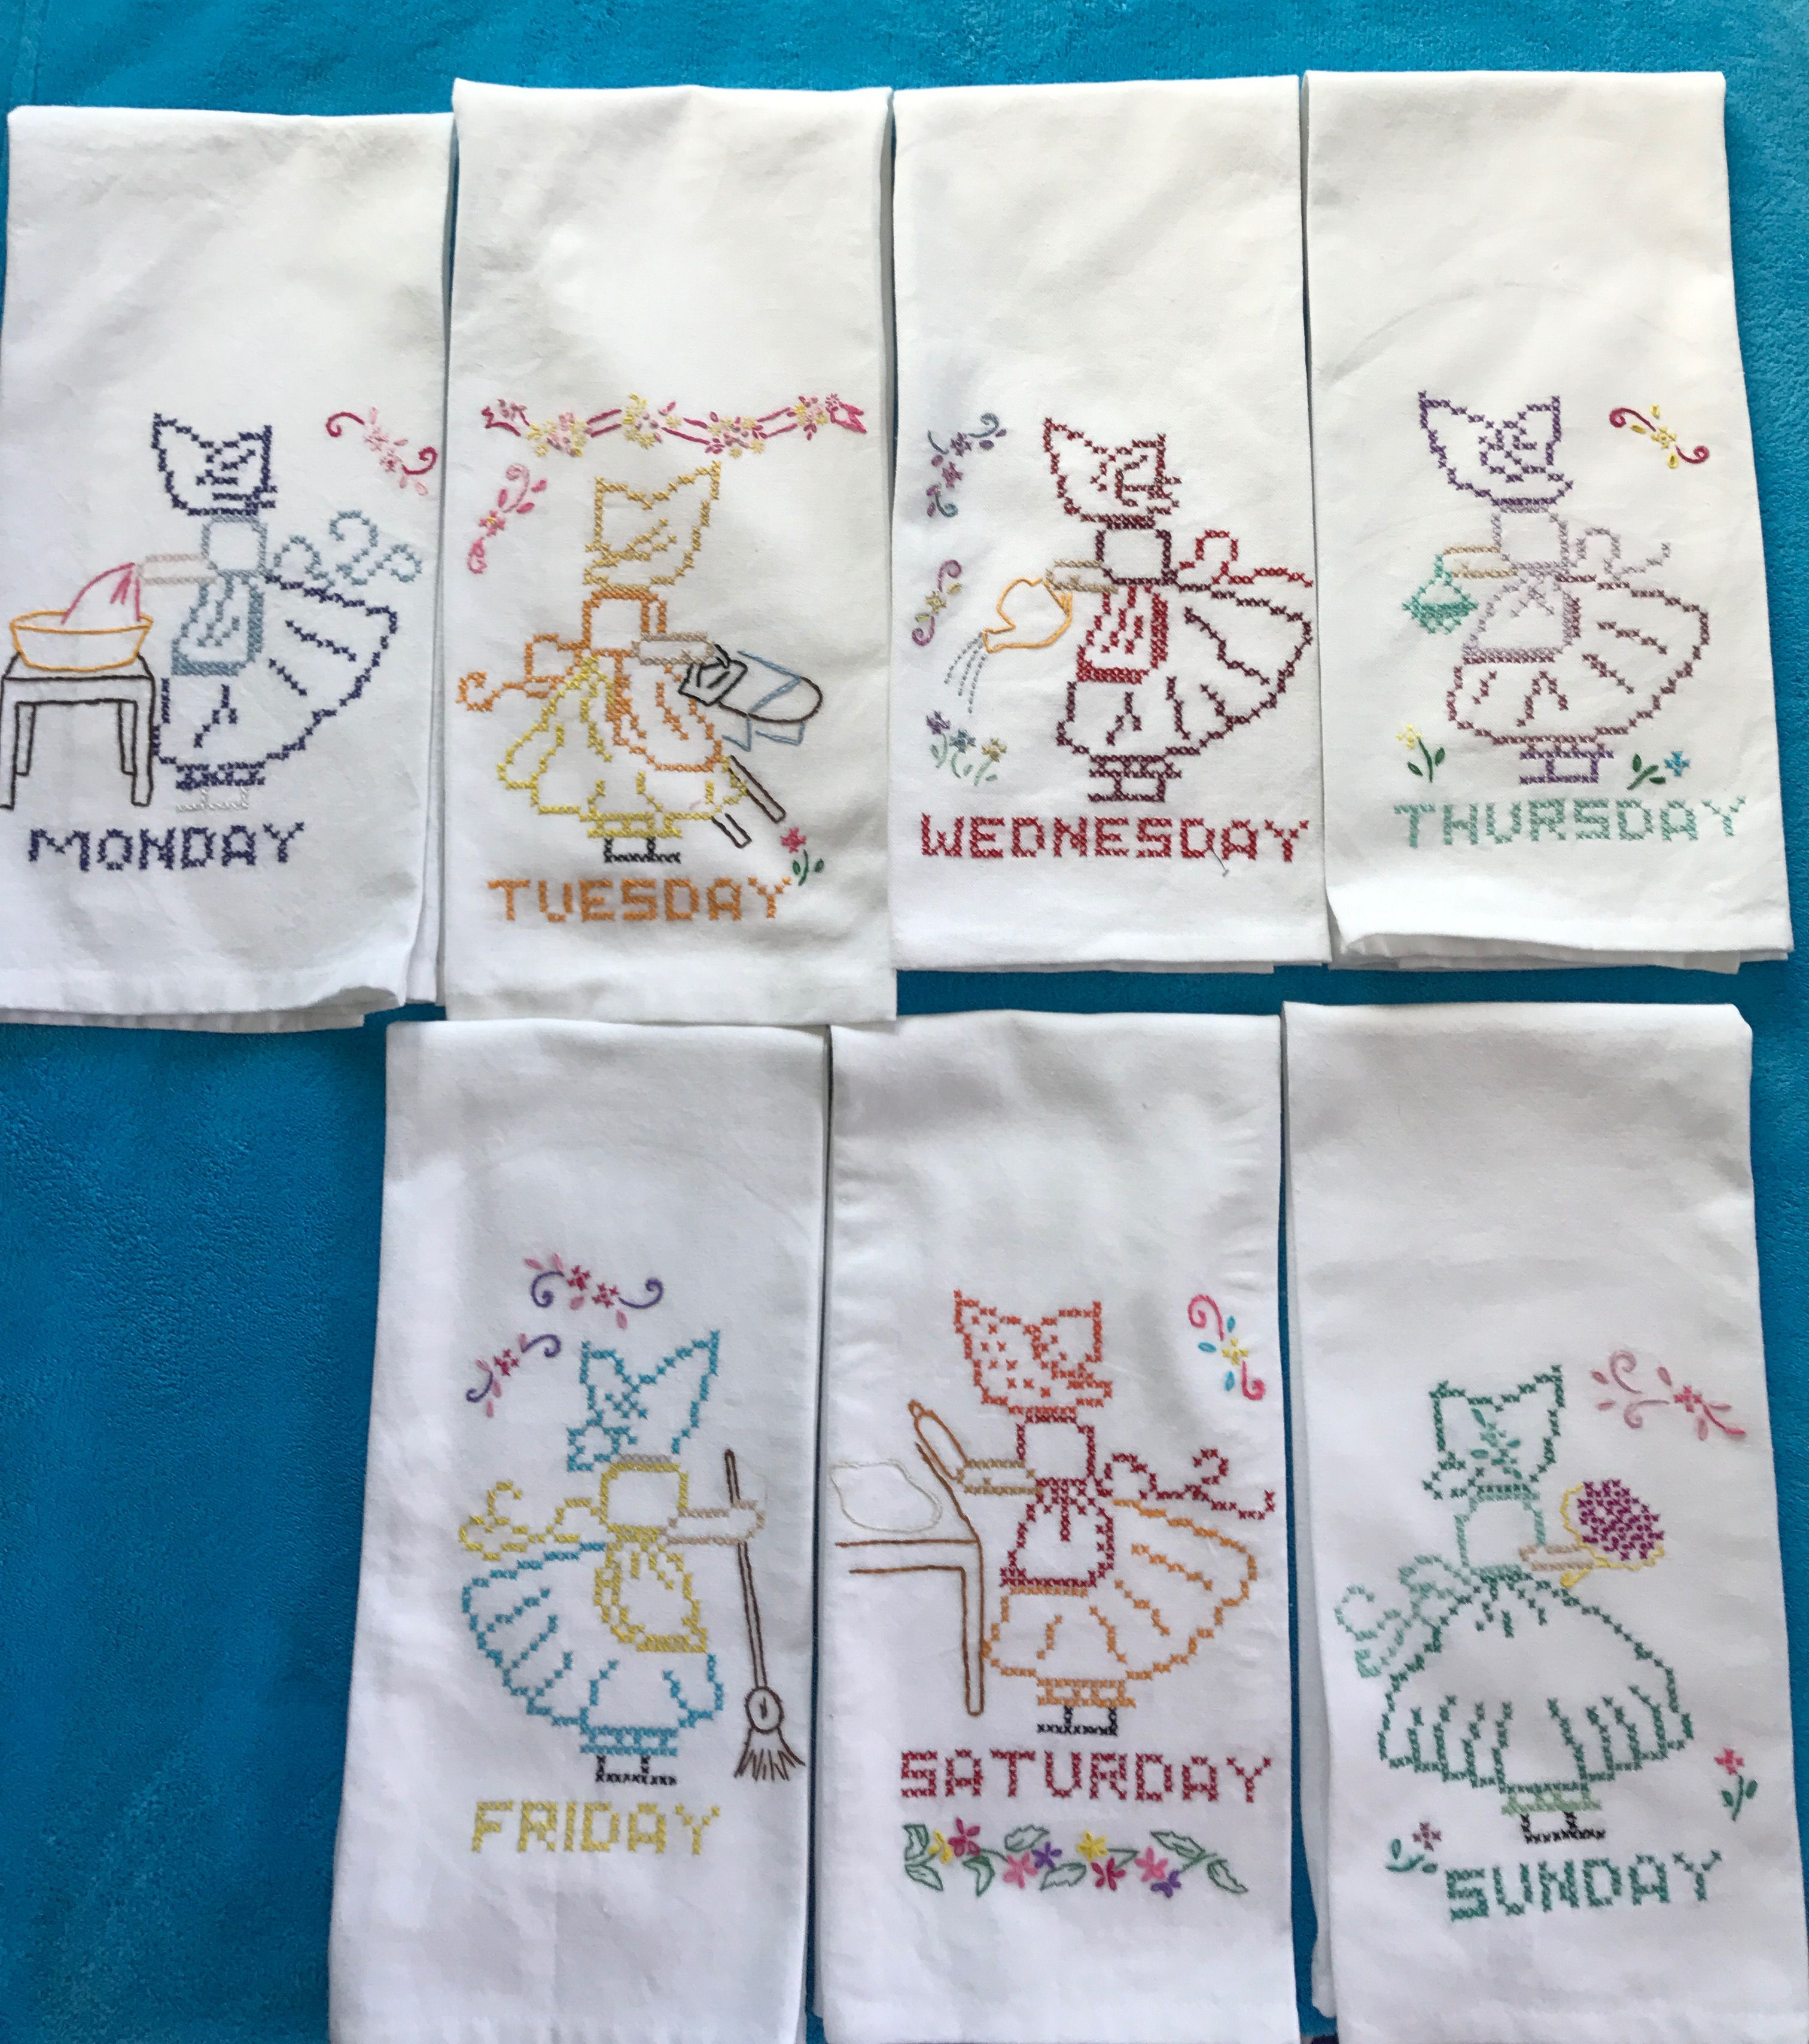 It S Sue Bonnet Tea Towels All Hand Embroidered Monday Thru Friday These Are Great Gifts For Christmas 30 00 Hand Embroidered Embroidery Handmade Items